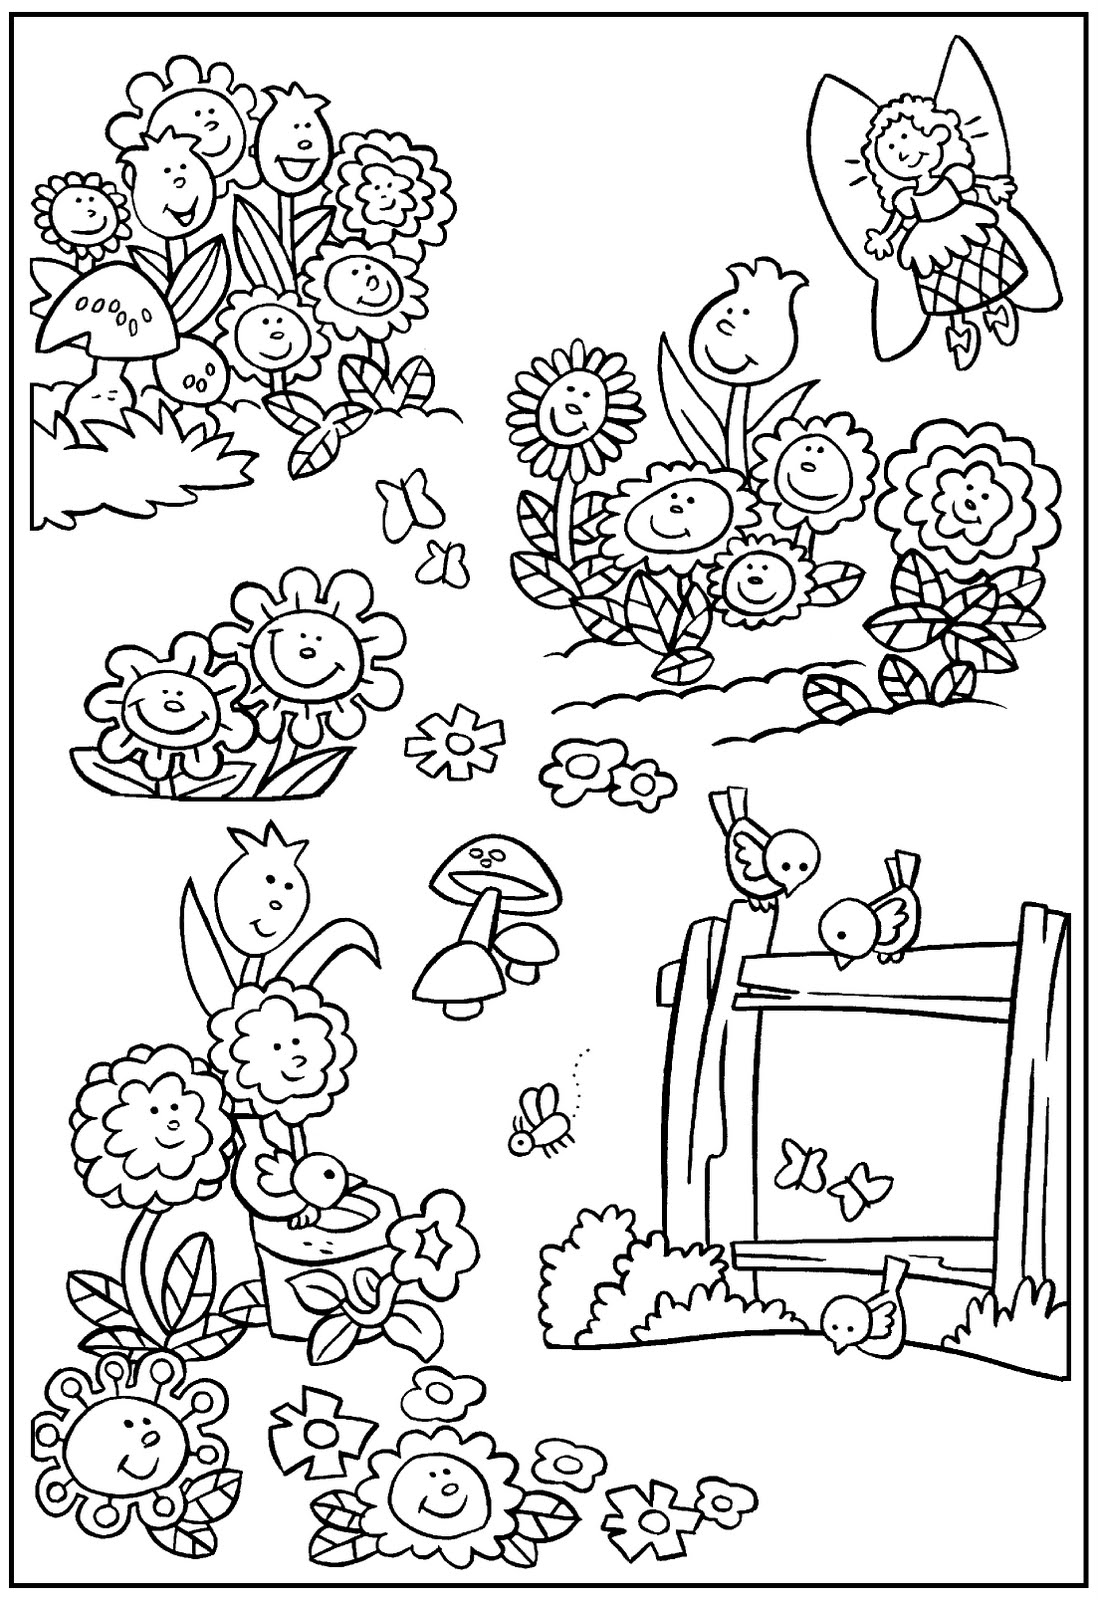 garden pictures to color butterfly in garden drawing at getdrawings free download pictures to garden color